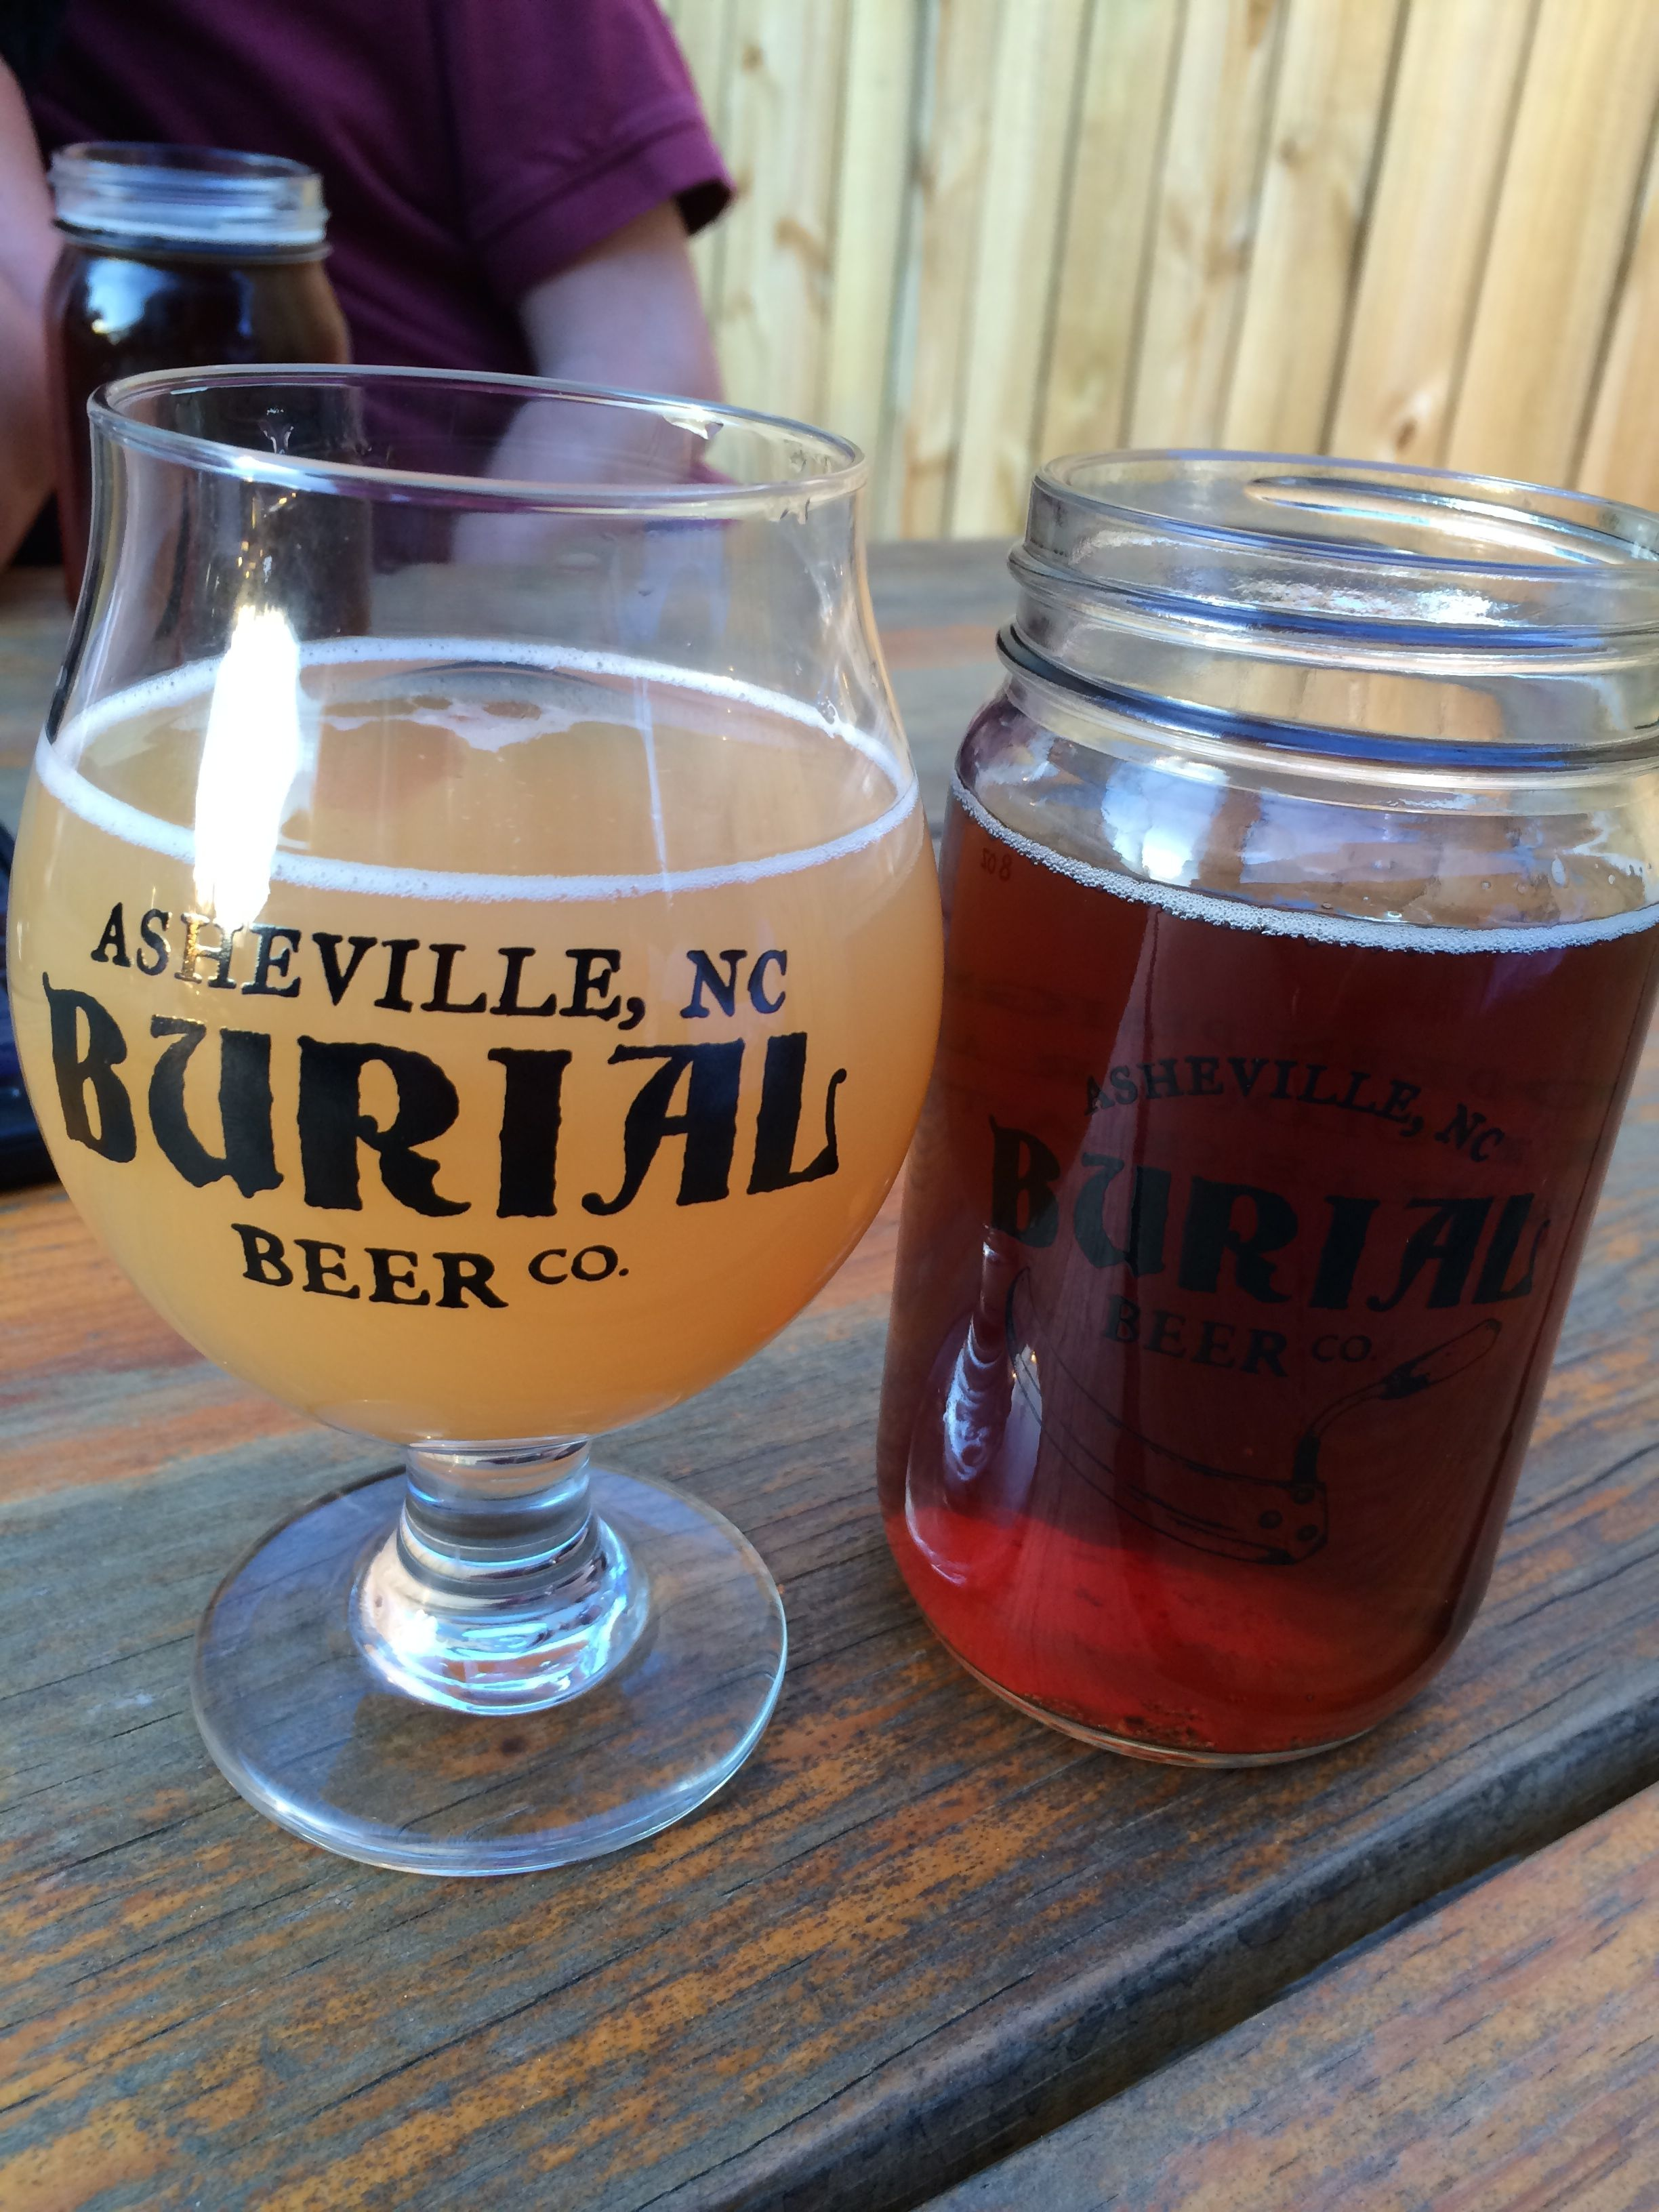 Yummy Beer from Burial Beer Co.